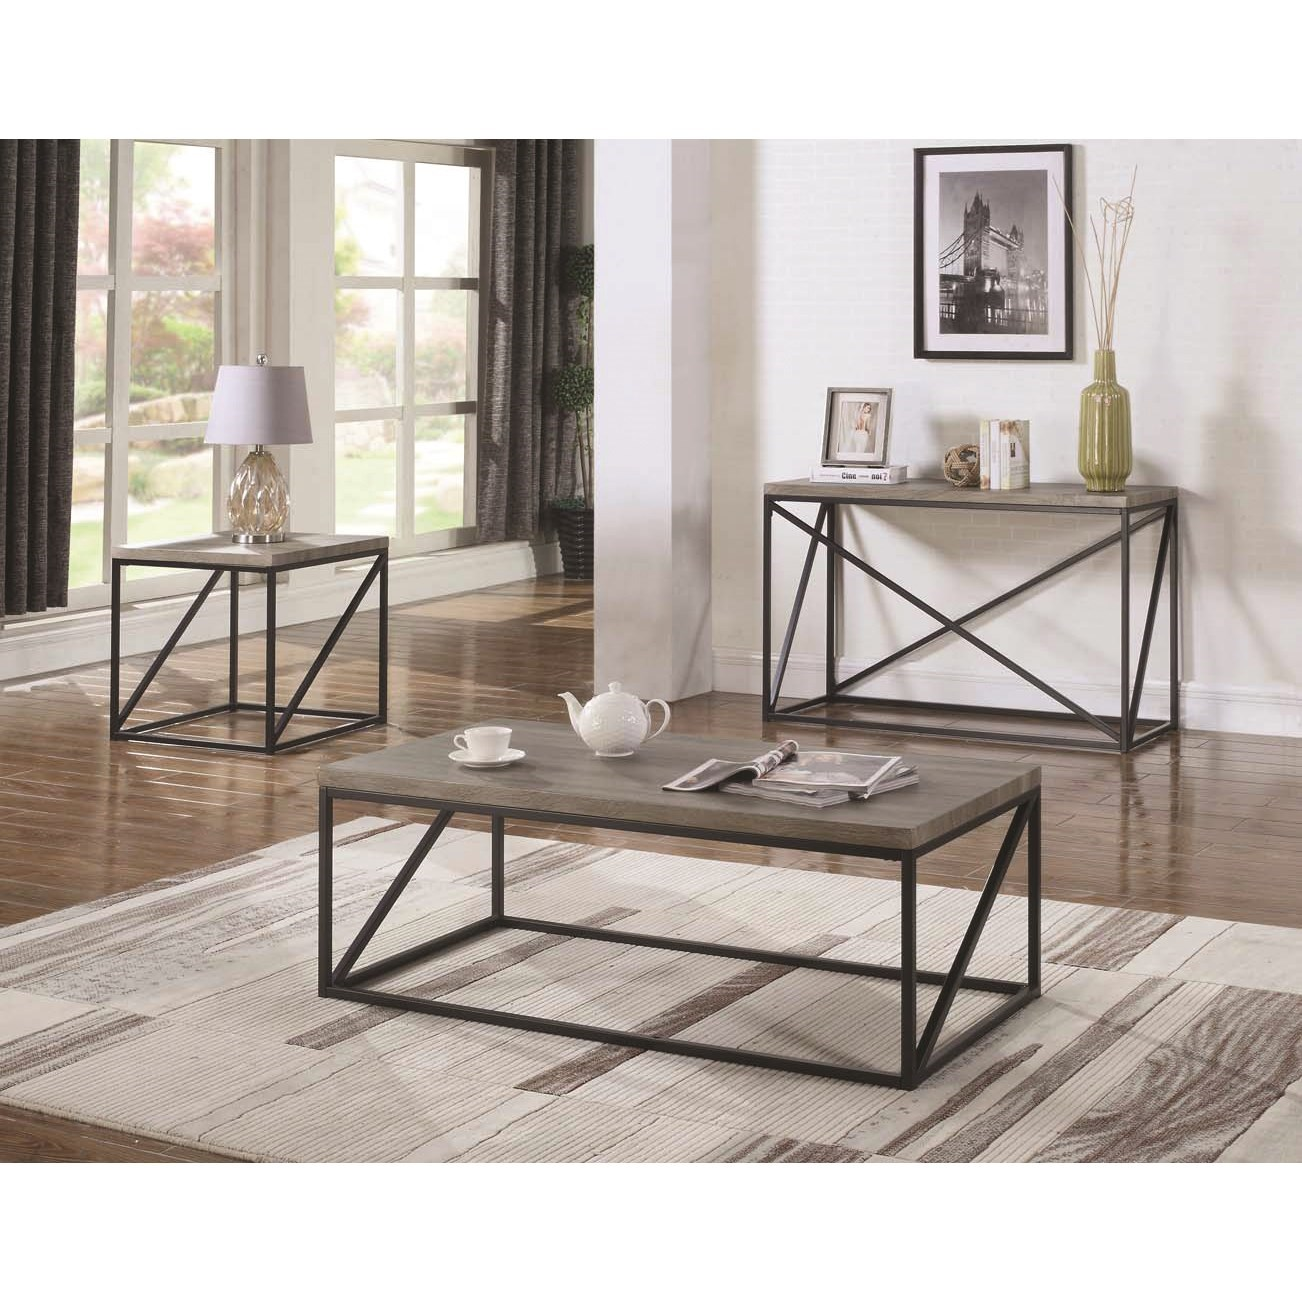 Coaster 70561 Industrial Sofa Table Value City Furniture